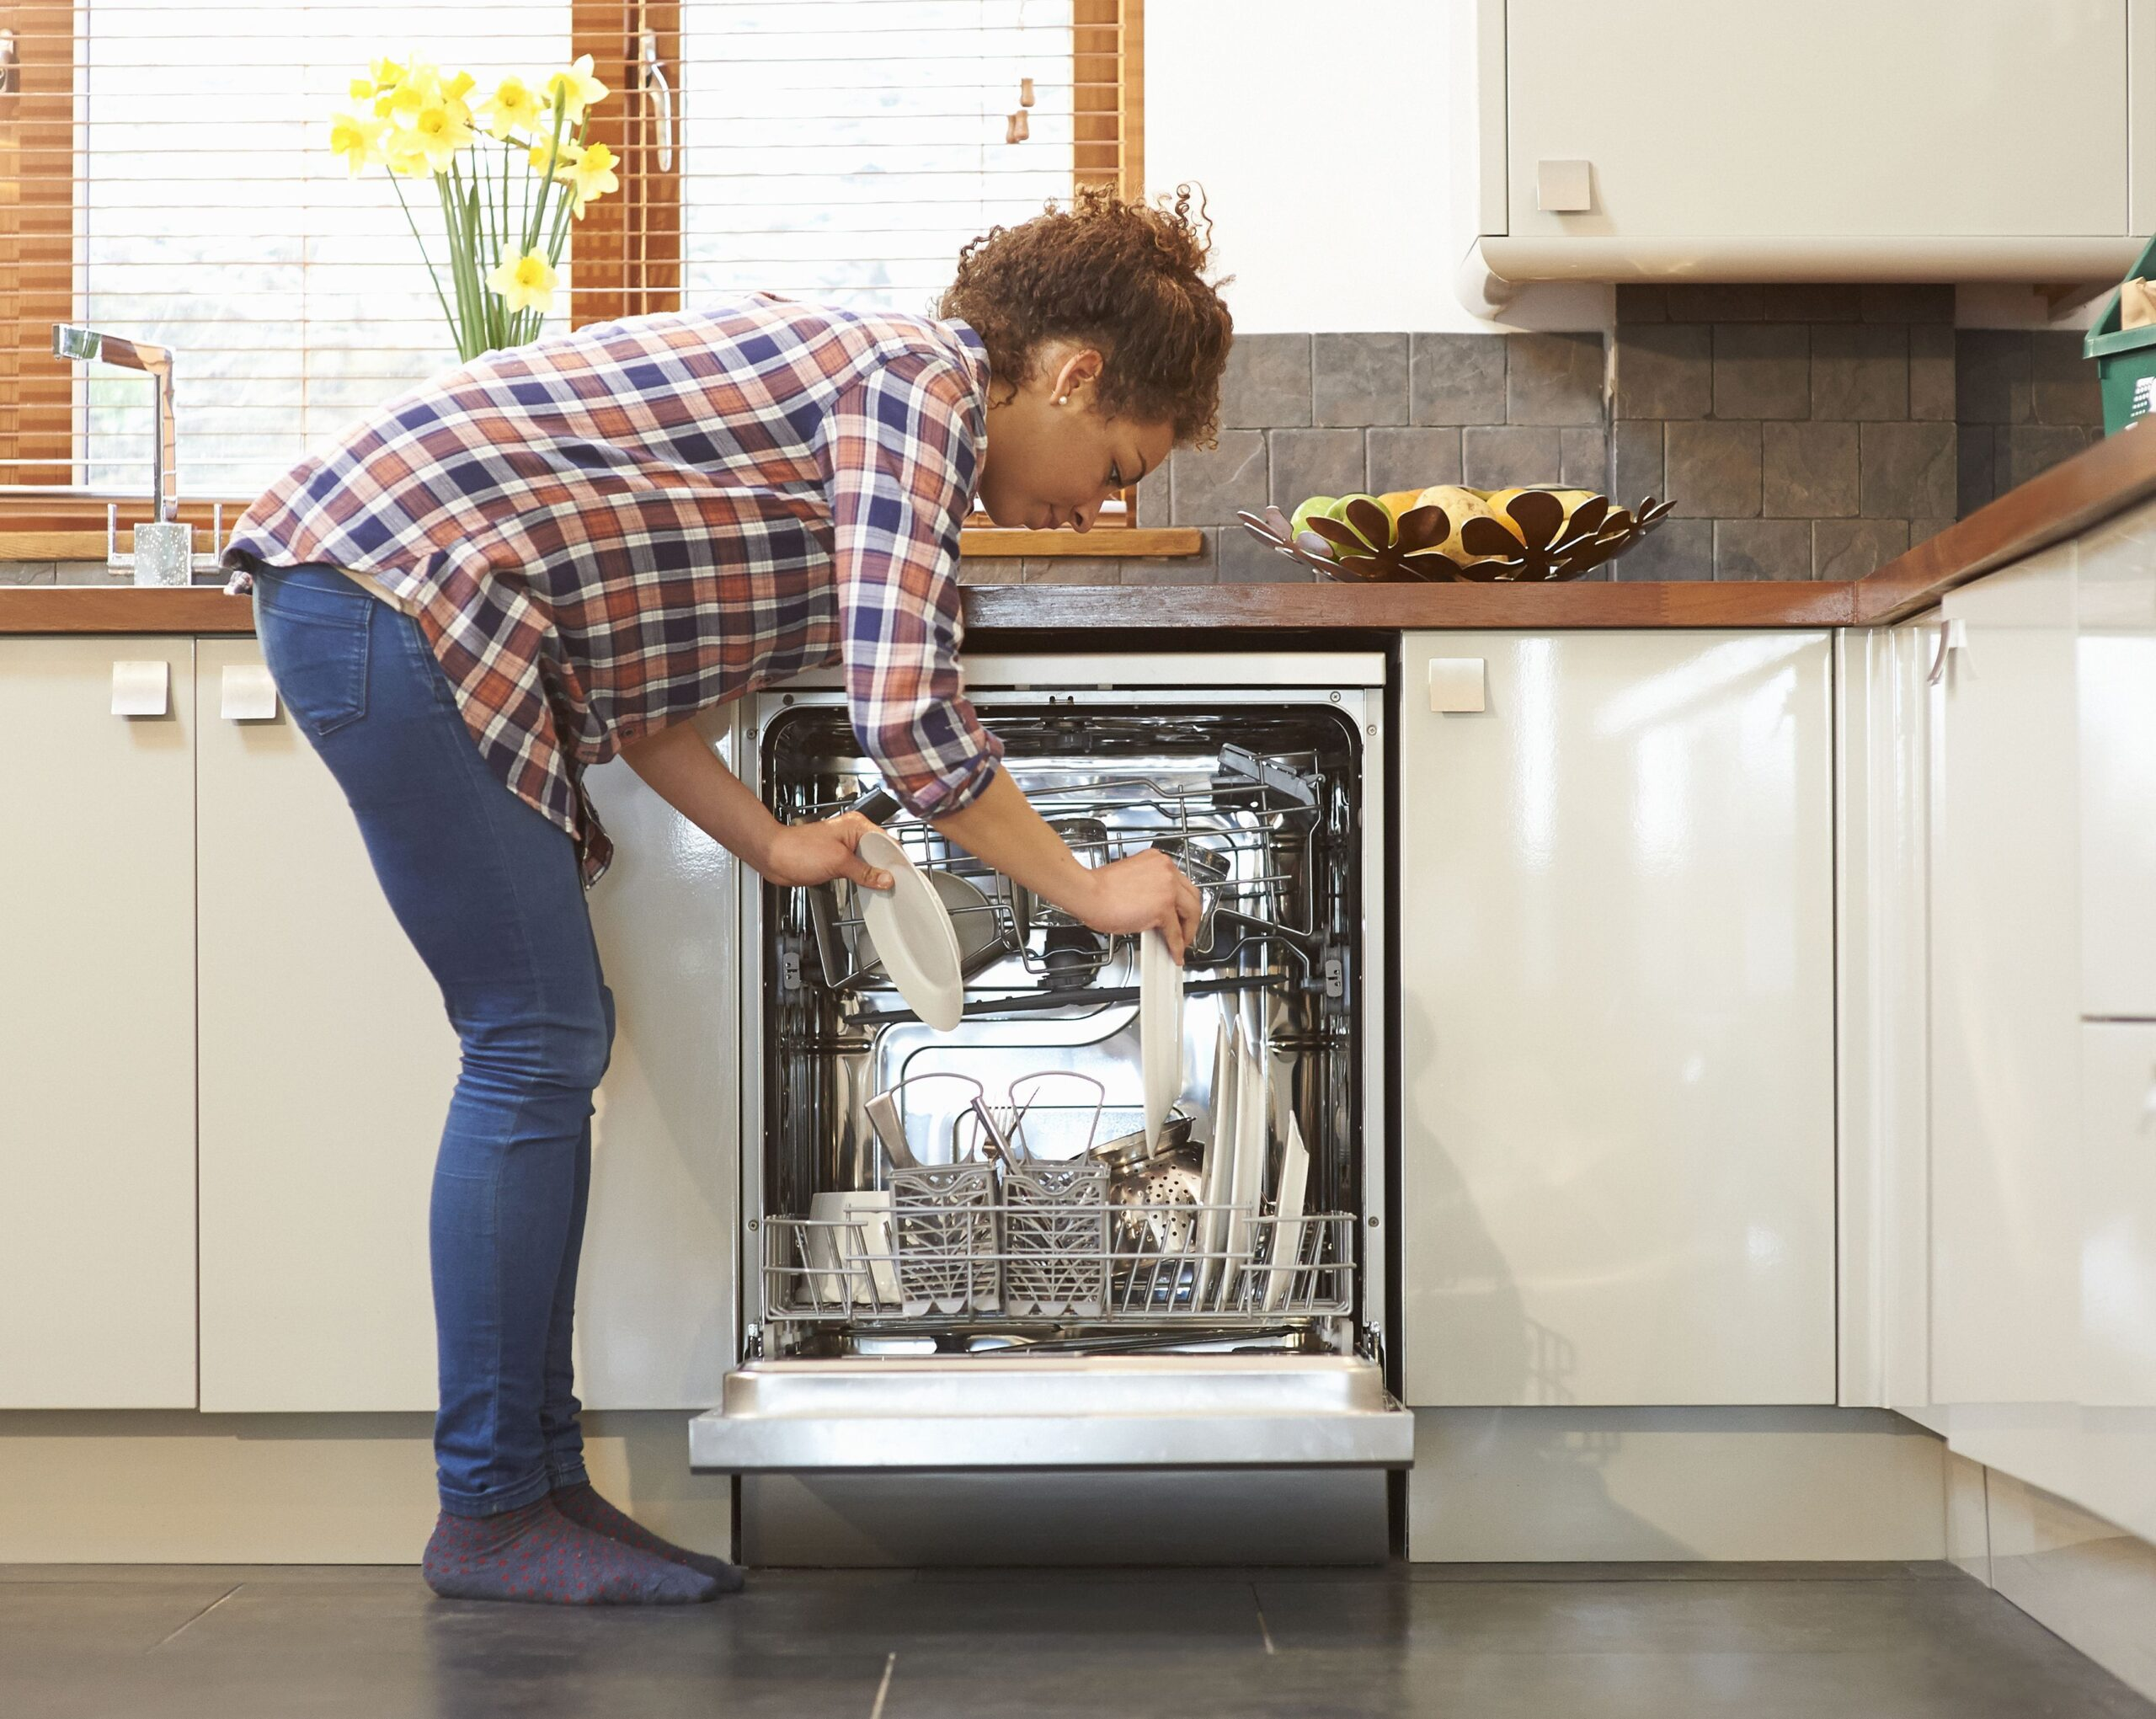 woman unloading dish washer in kitchen 483712233 59ef8ea2c412440011c9b681 scaled